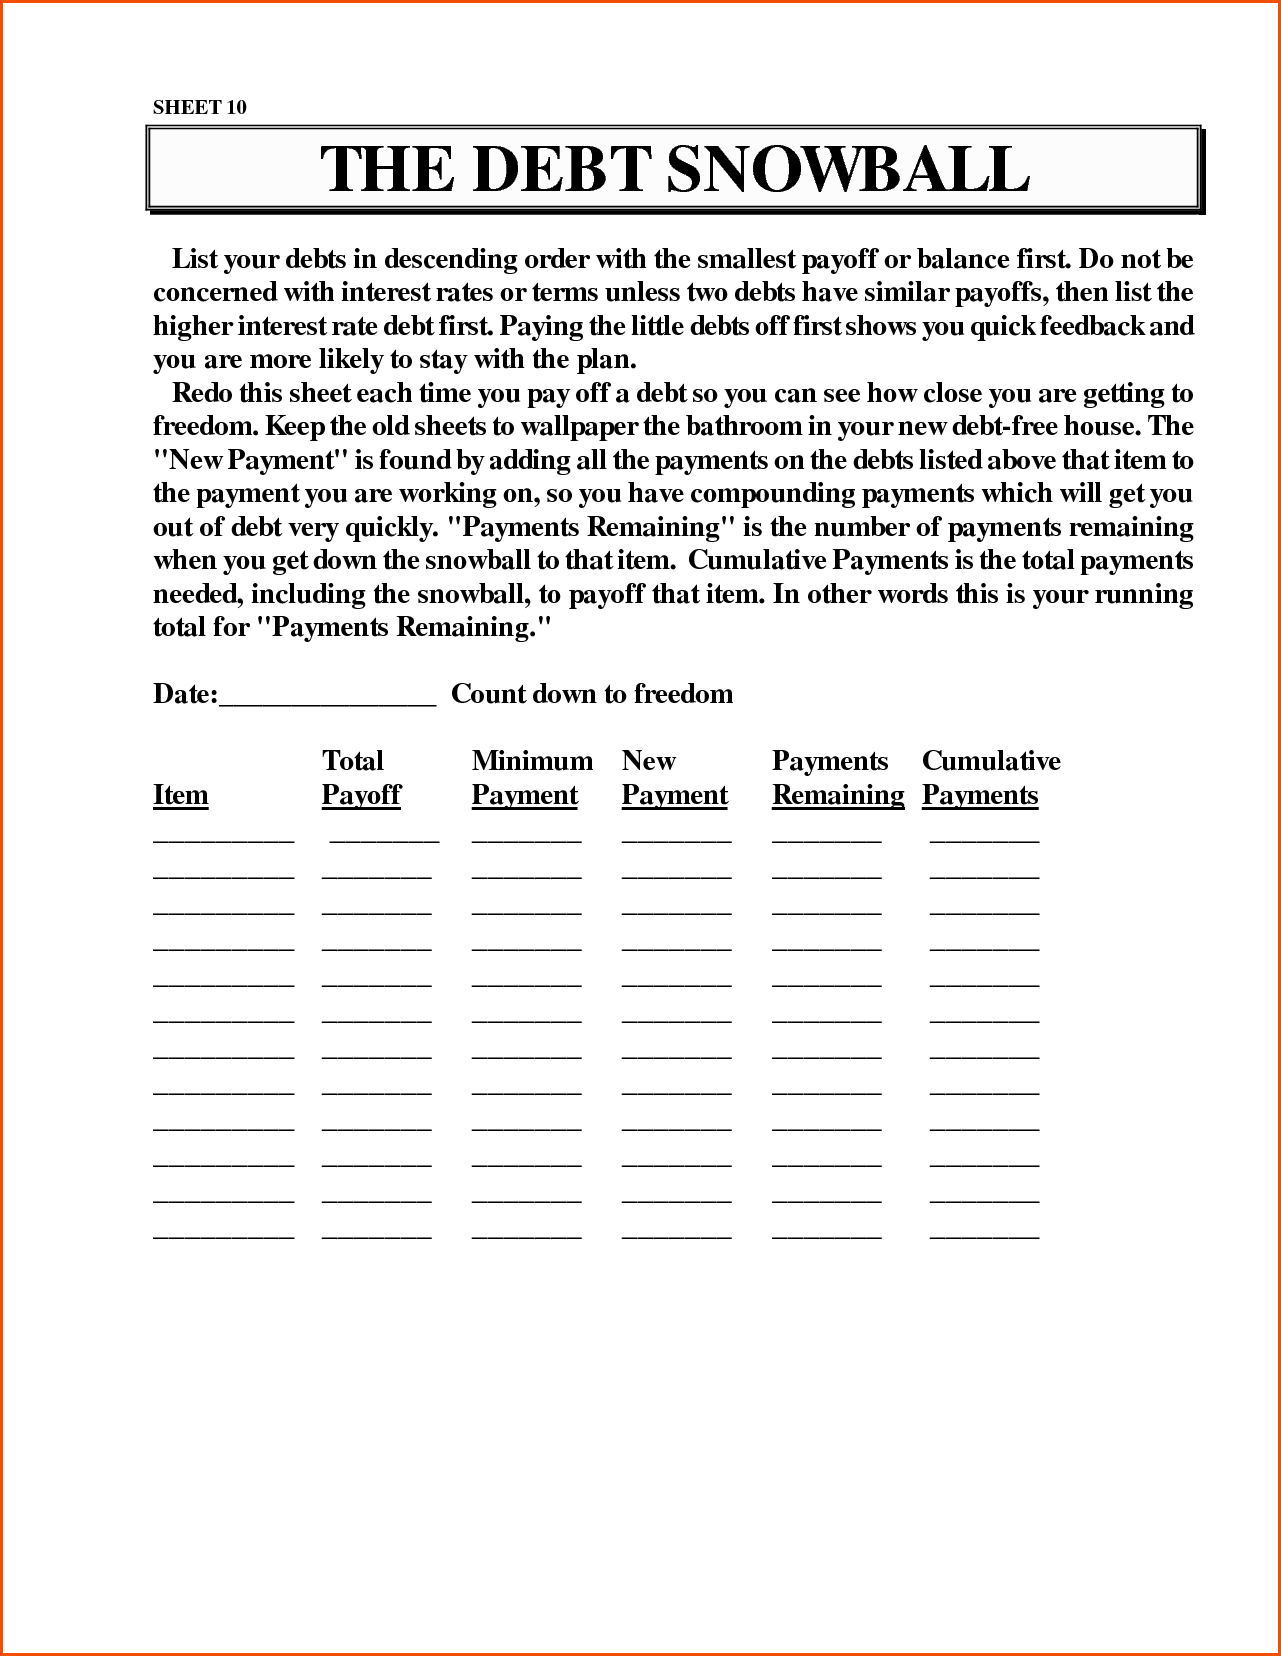 Worksheets Dave Ramsey Financial Peace Worksheets view source image budget debt financial misc pinterest image